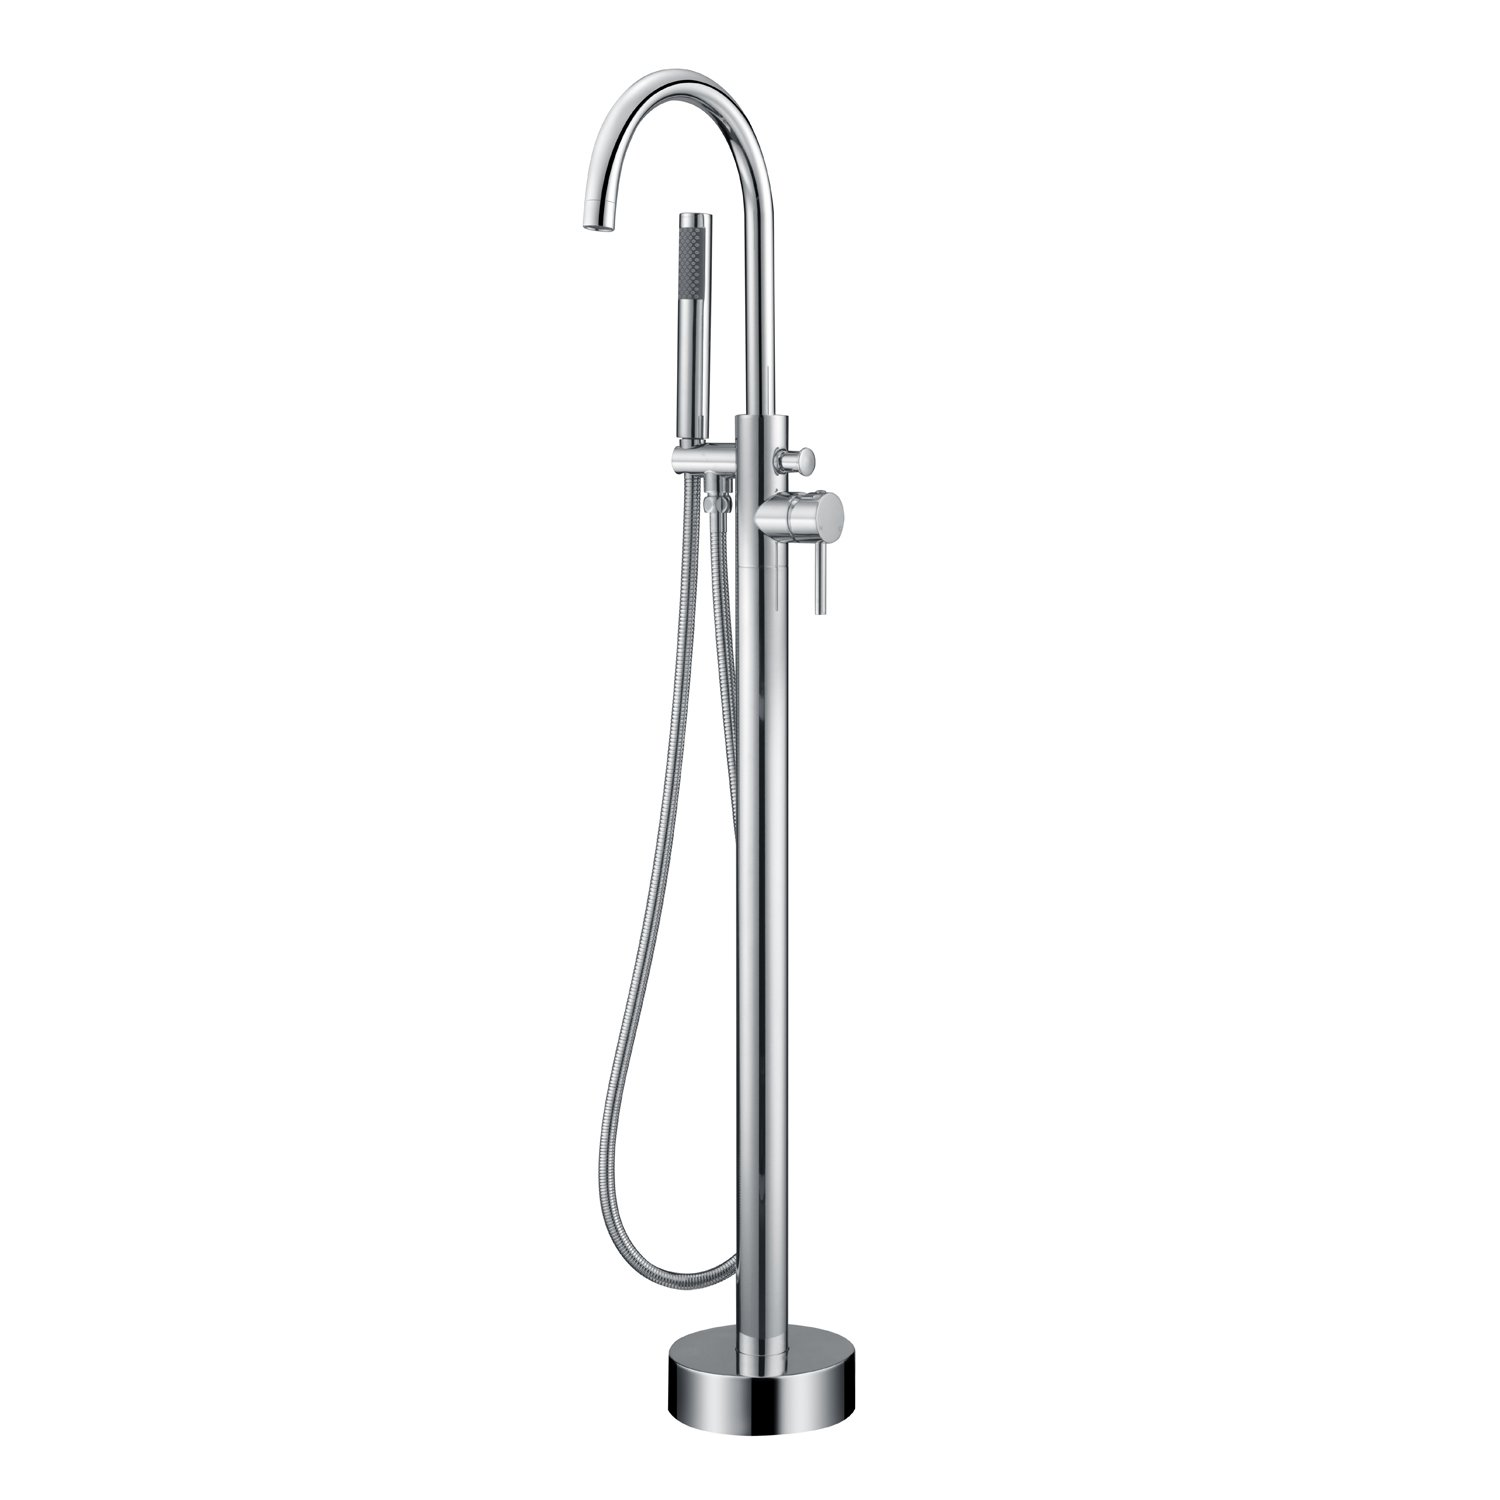 Artiqua Freestanding Tub Filler Bathtub Faucet Chrome Single Handle